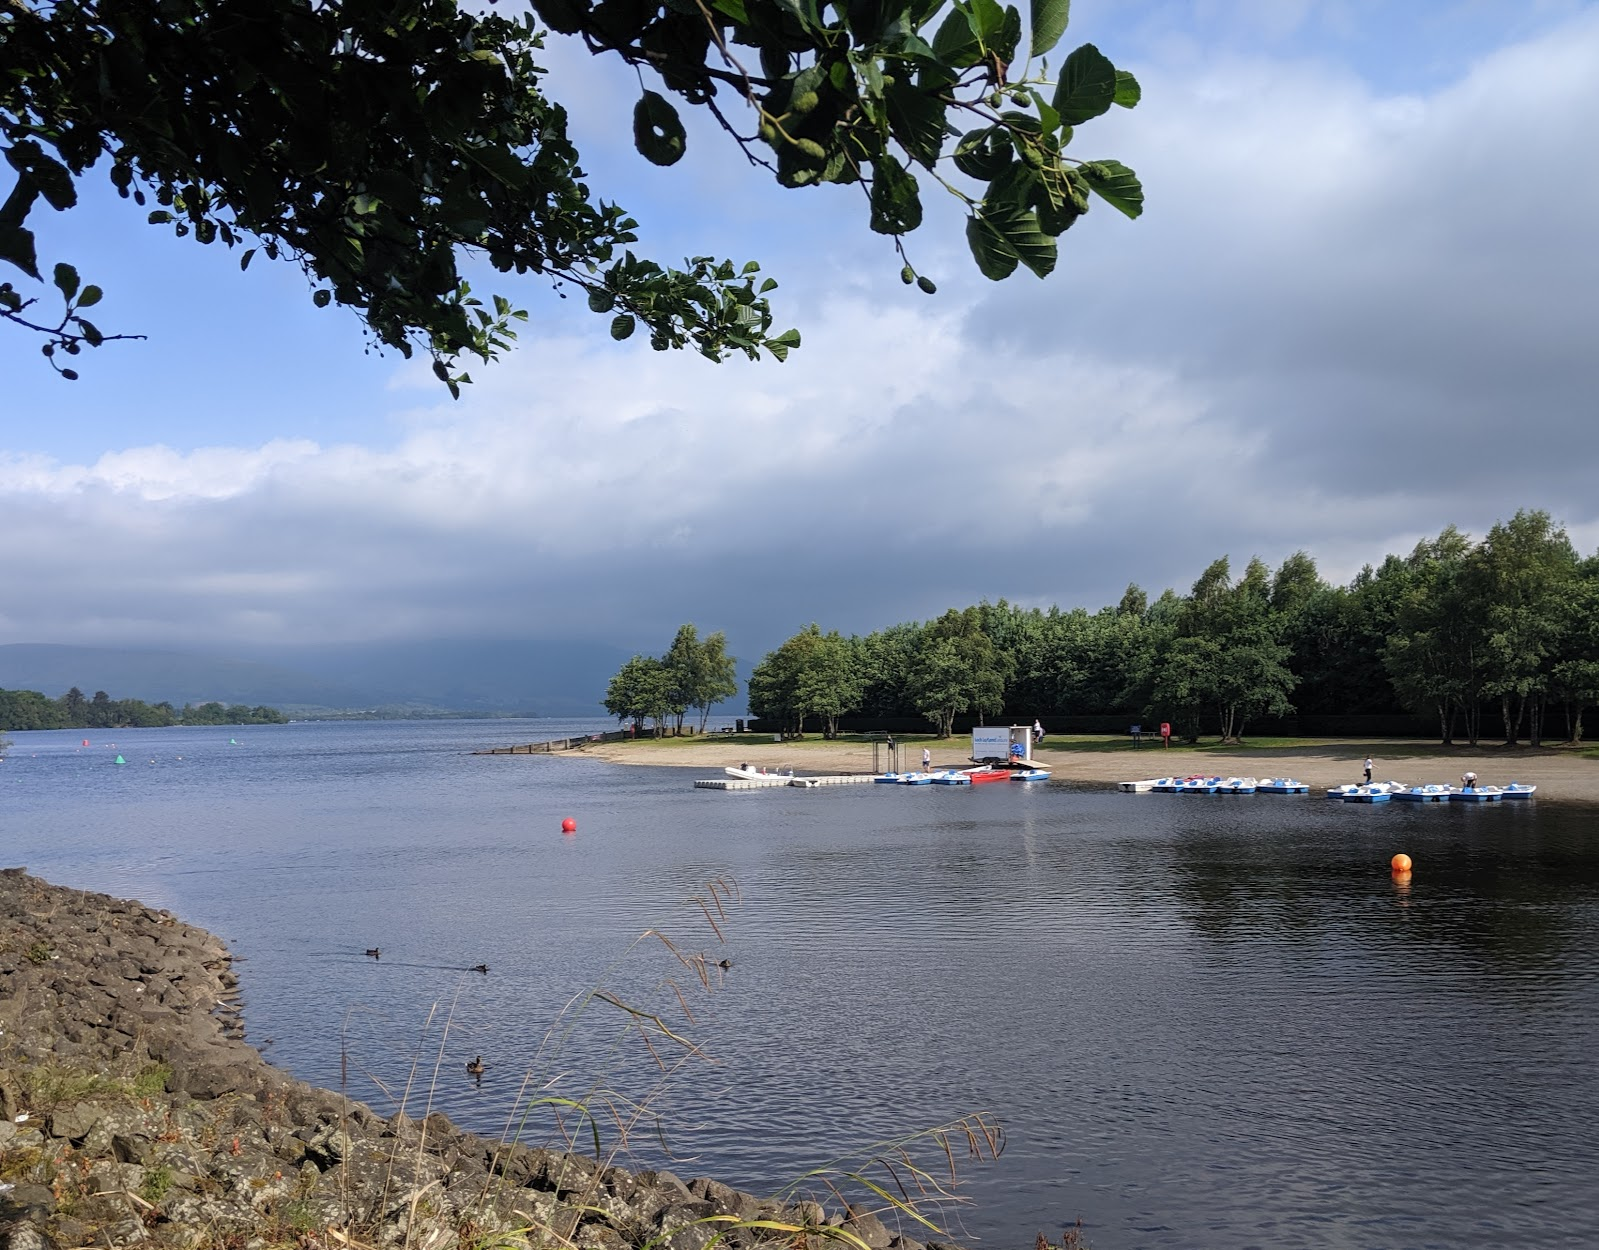 A Short Break at Cameron Lodges, Loch Lomond - Loch Lomond Shores - watersports